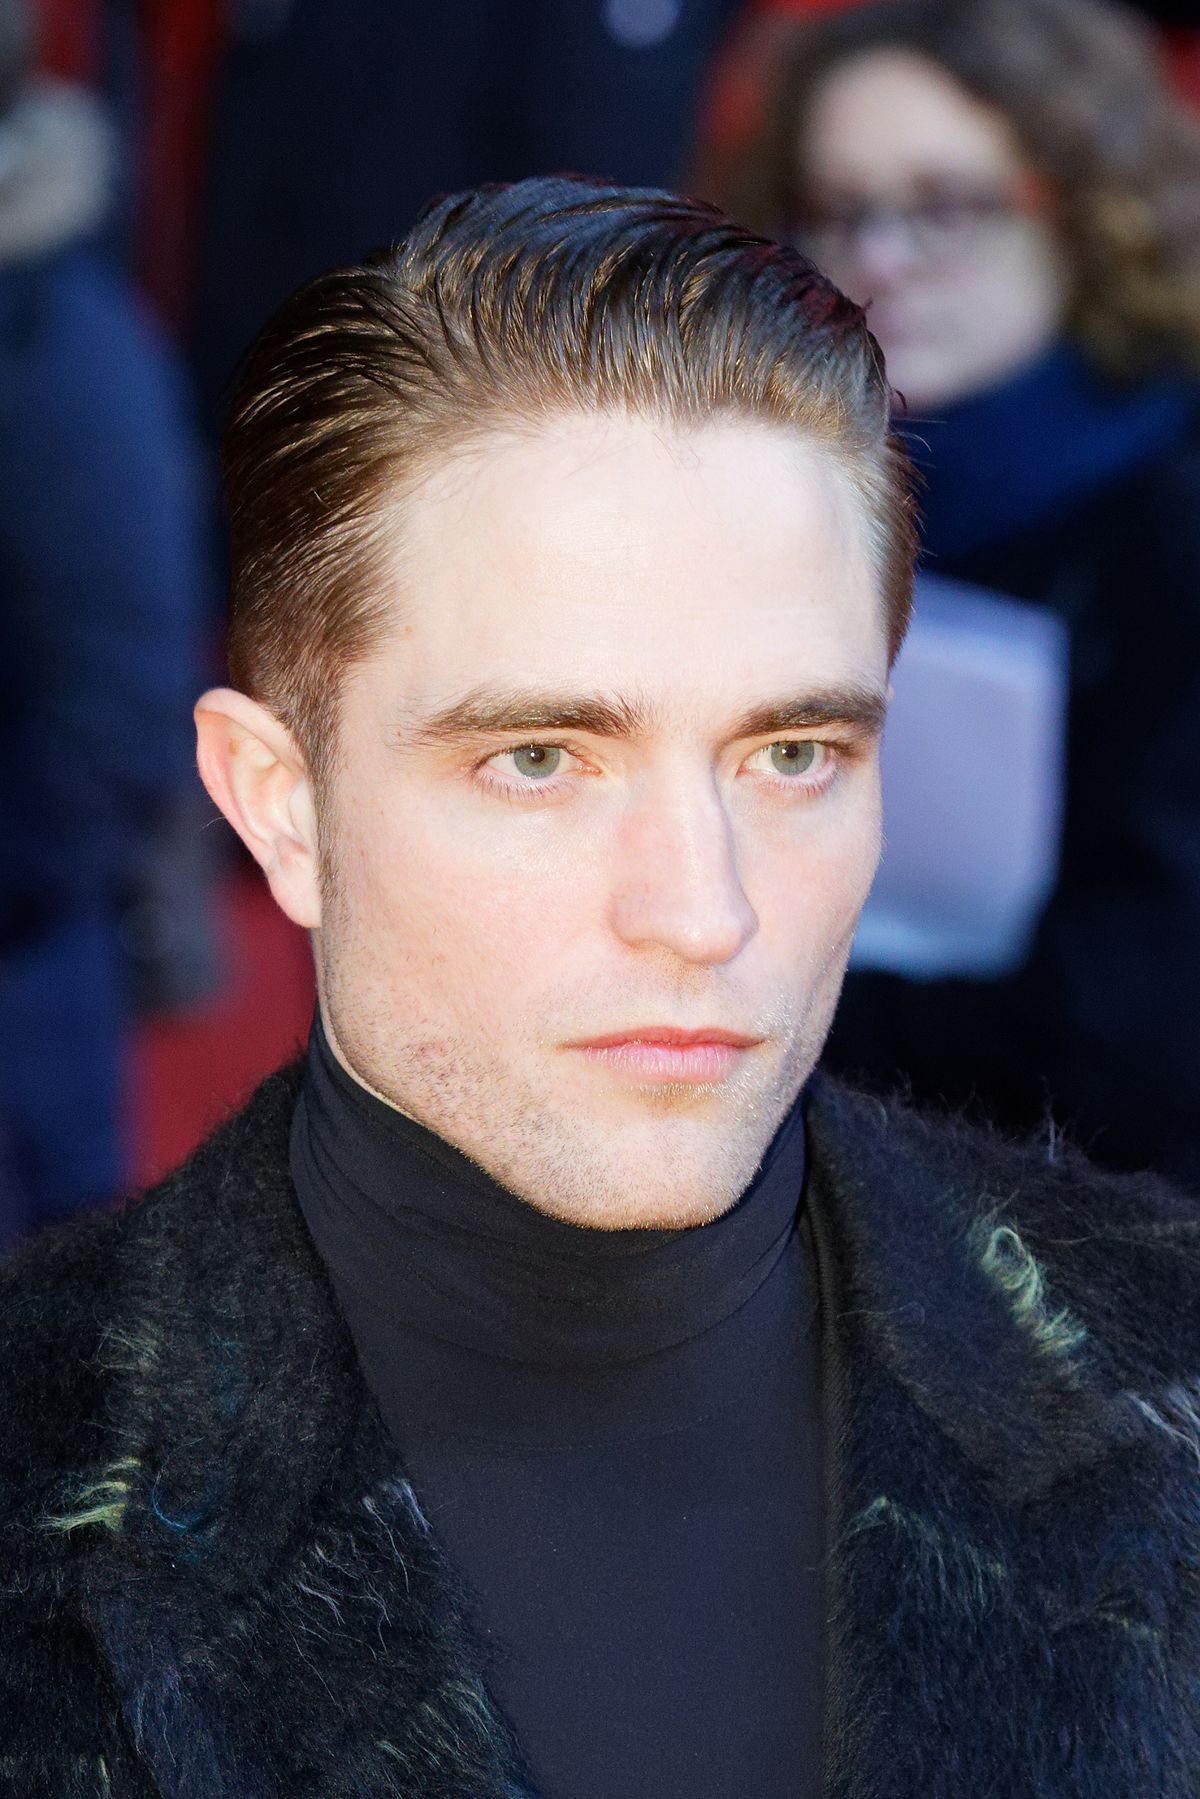 robert pattinson filmographyrobert pattinson 2017, robert pattinson wikipedia, robert pattinson fka twigs, robert pattinson let me sign, robert pattinson & kristen stewart, robert pattinson dior, robert pattinson vk, robert pattinson films, robert pattinson filmography, robert pattinson news, robert pattinson height, robert pattinson фильмы, robert pattinson movies, robert pattinson фото, robert pattinson новости, robert pattinson wiki, robert pattinson tumblr, robert pattinson is an english actor, robert pattinson song, robert pattinson decode